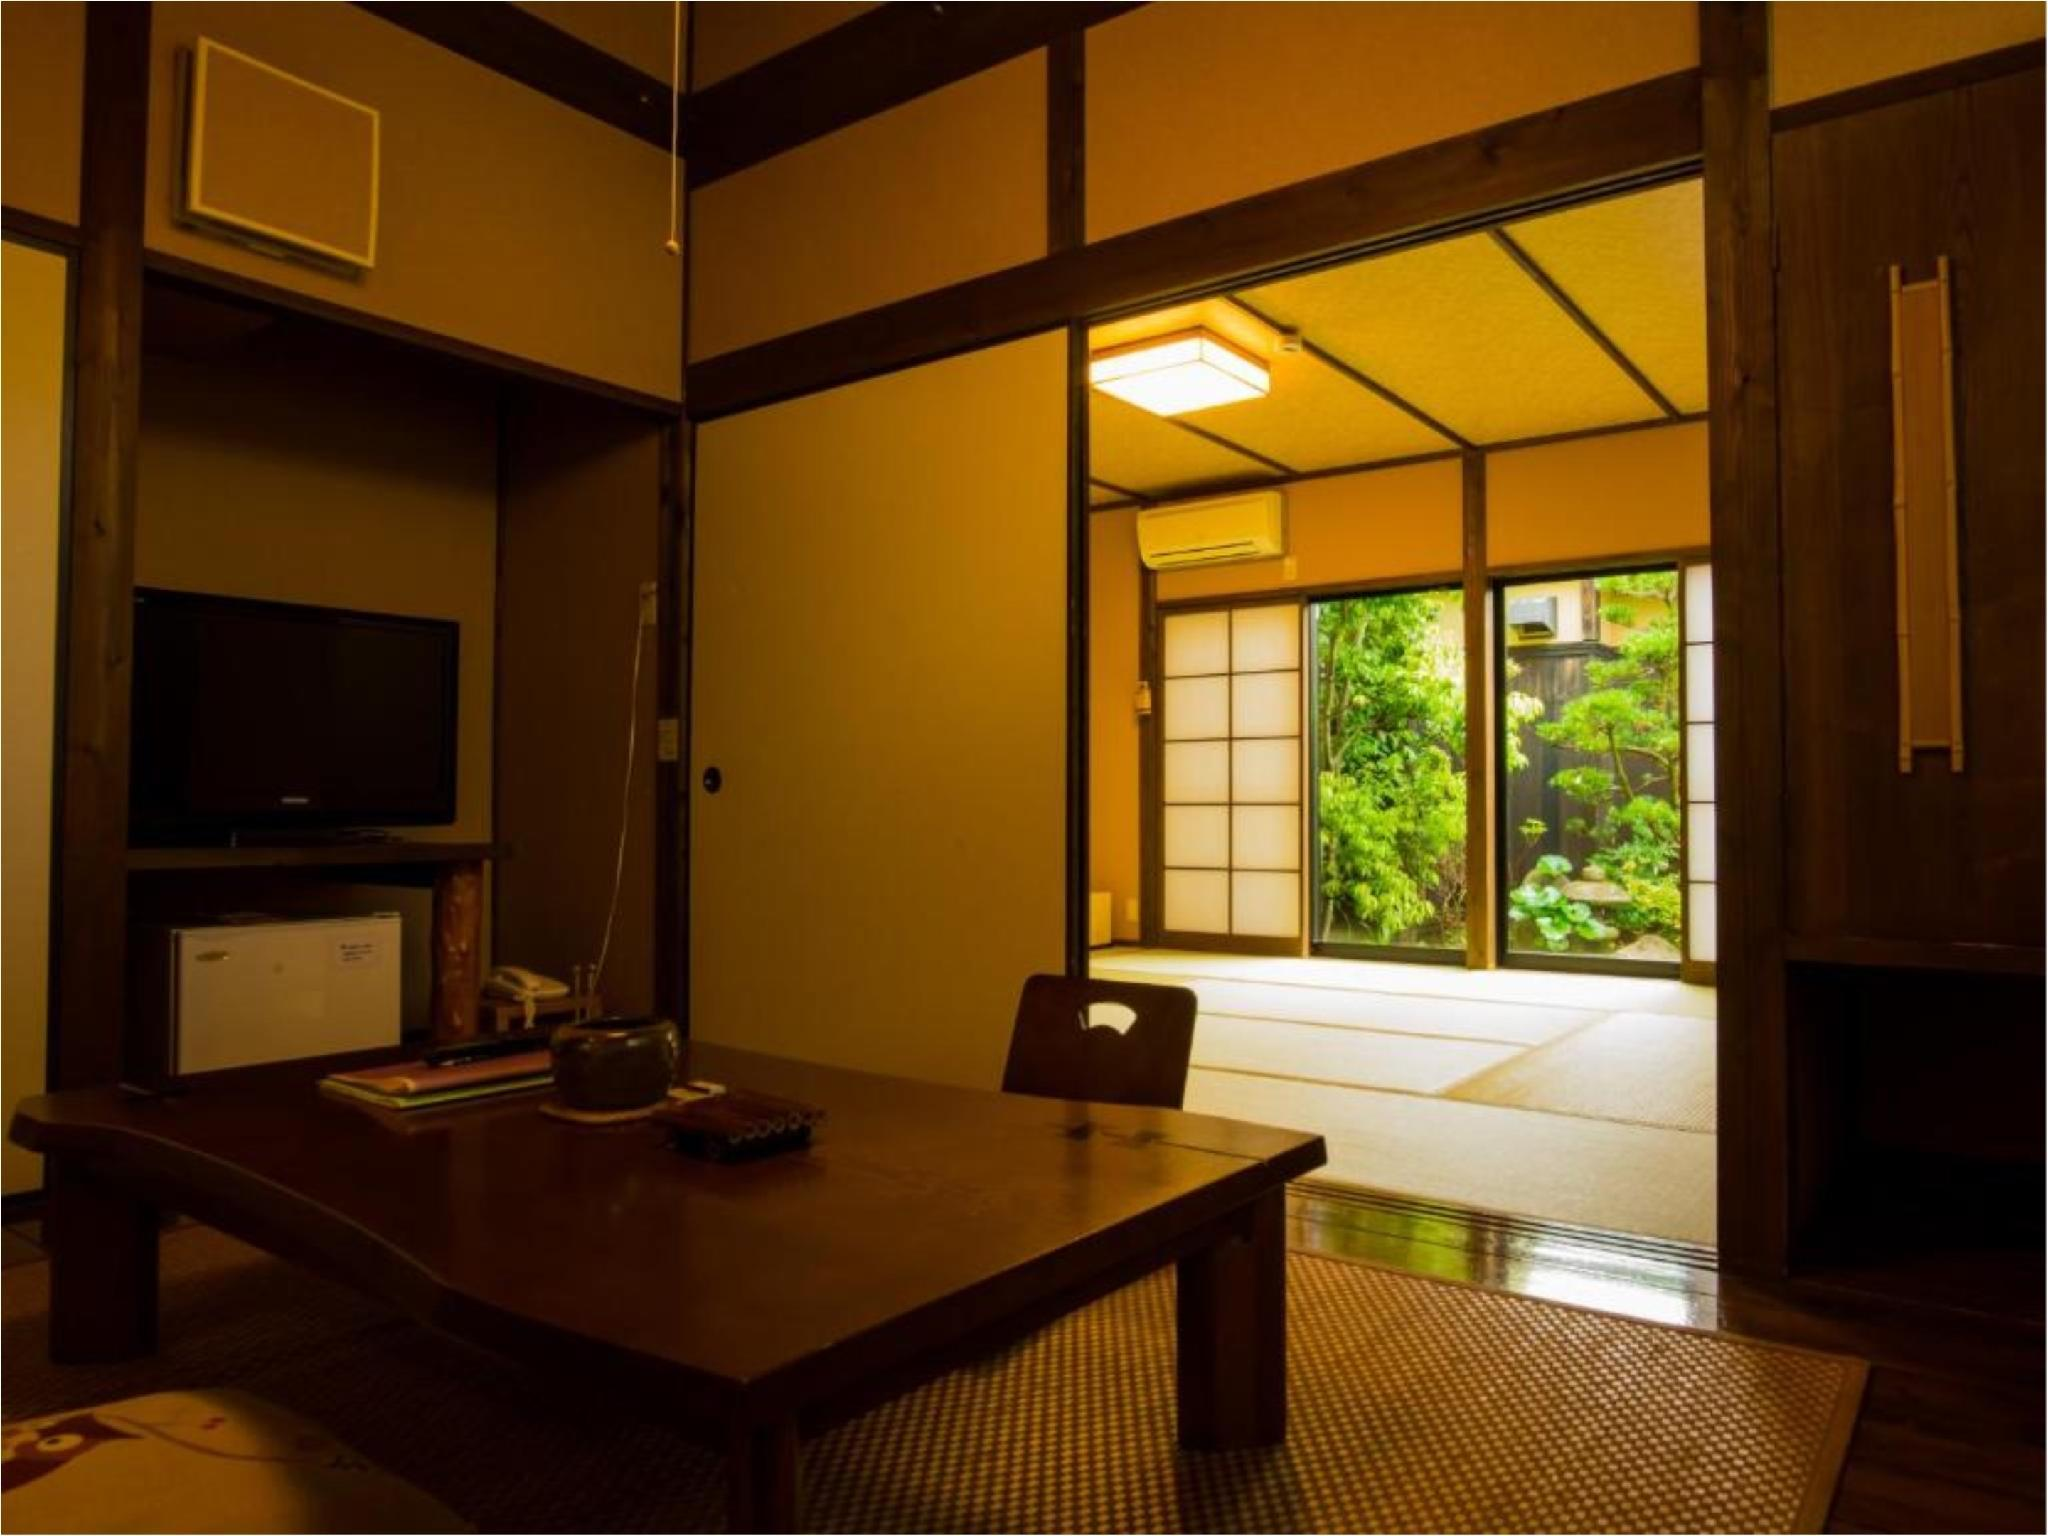 다다미 객실(별채/히노키탕) (Detached Japanese-style Room with Cypress Bath)